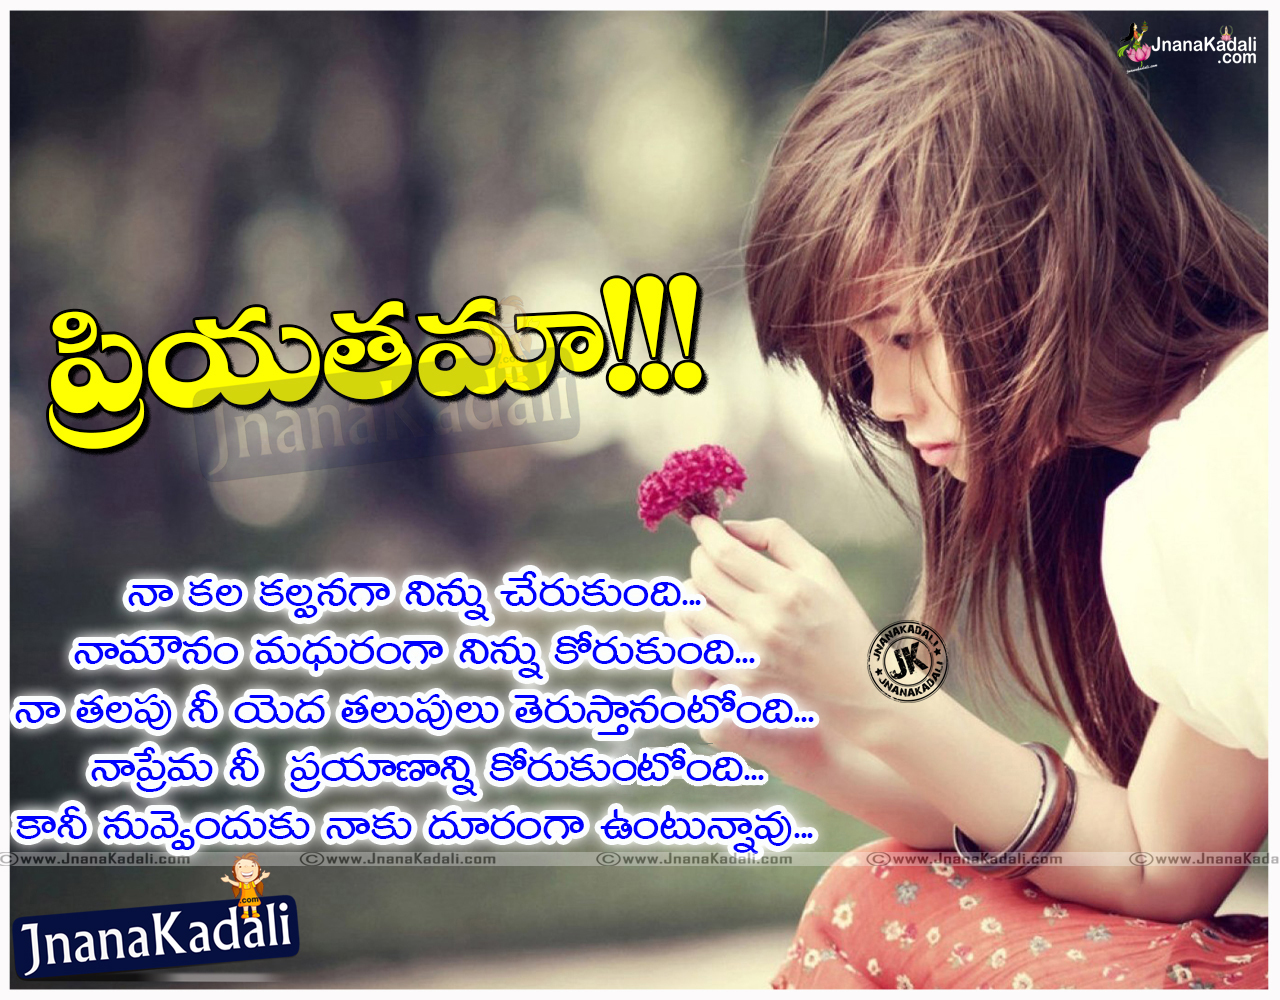 Heart Touching Telugu Love Quotes With Hd Wallpapers, - English Love Failure Quotes - HD Wallpaper